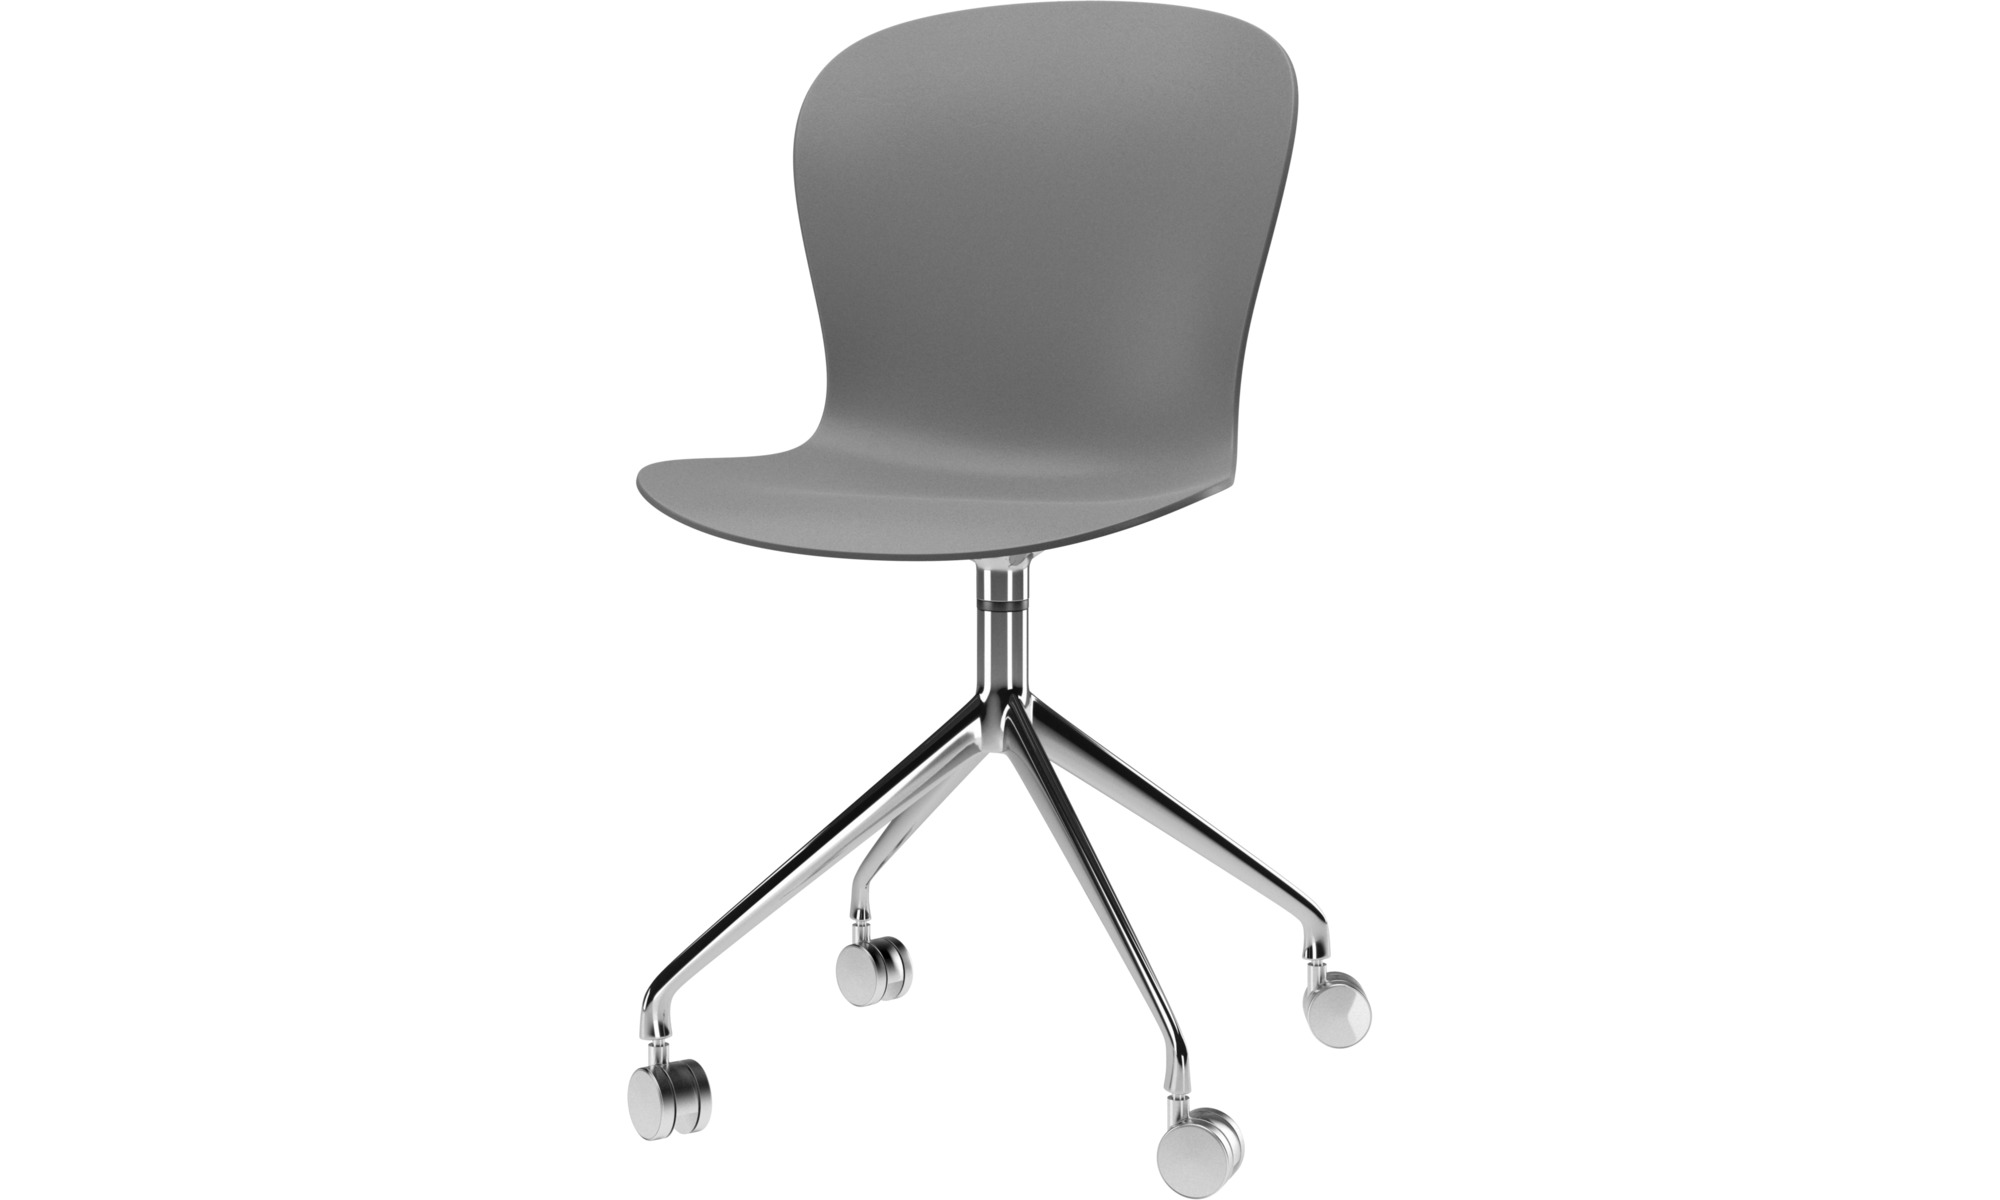 Home office chairs - Adelaide chair with swivel function and wheels - Grey - Metal